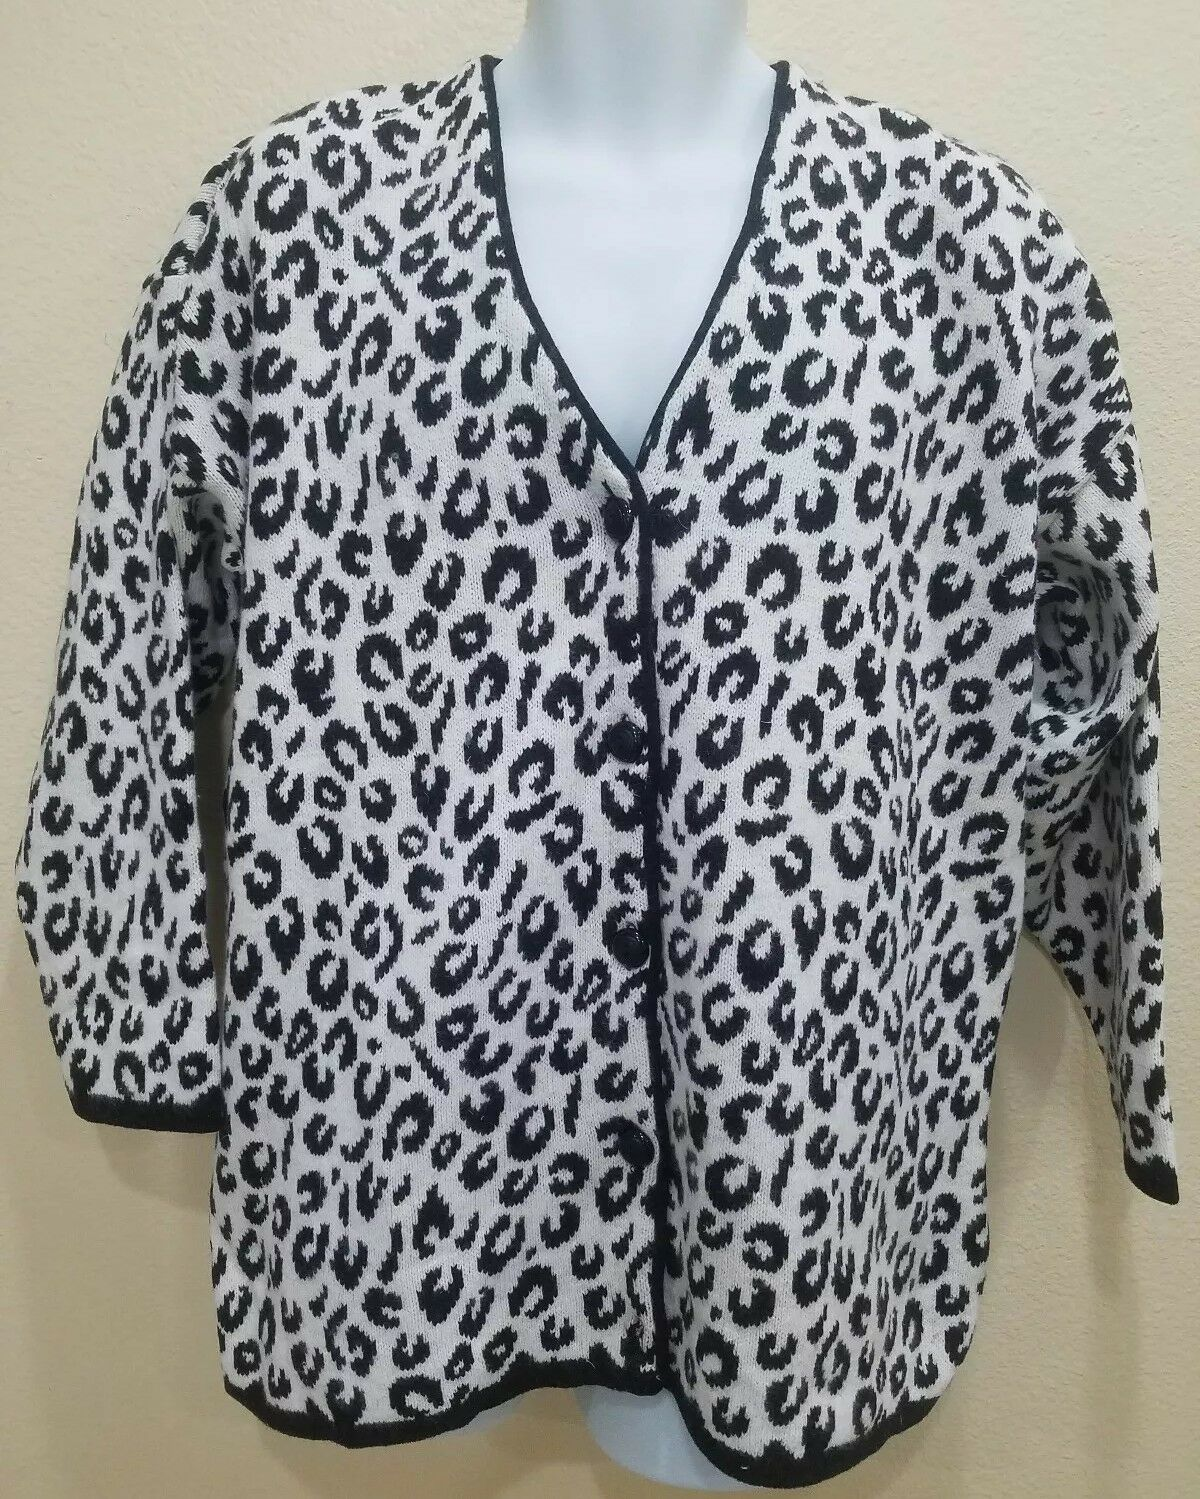 Maglia women Leopard Print Sweater Made in  15% Angora Rabbit Hair Size M